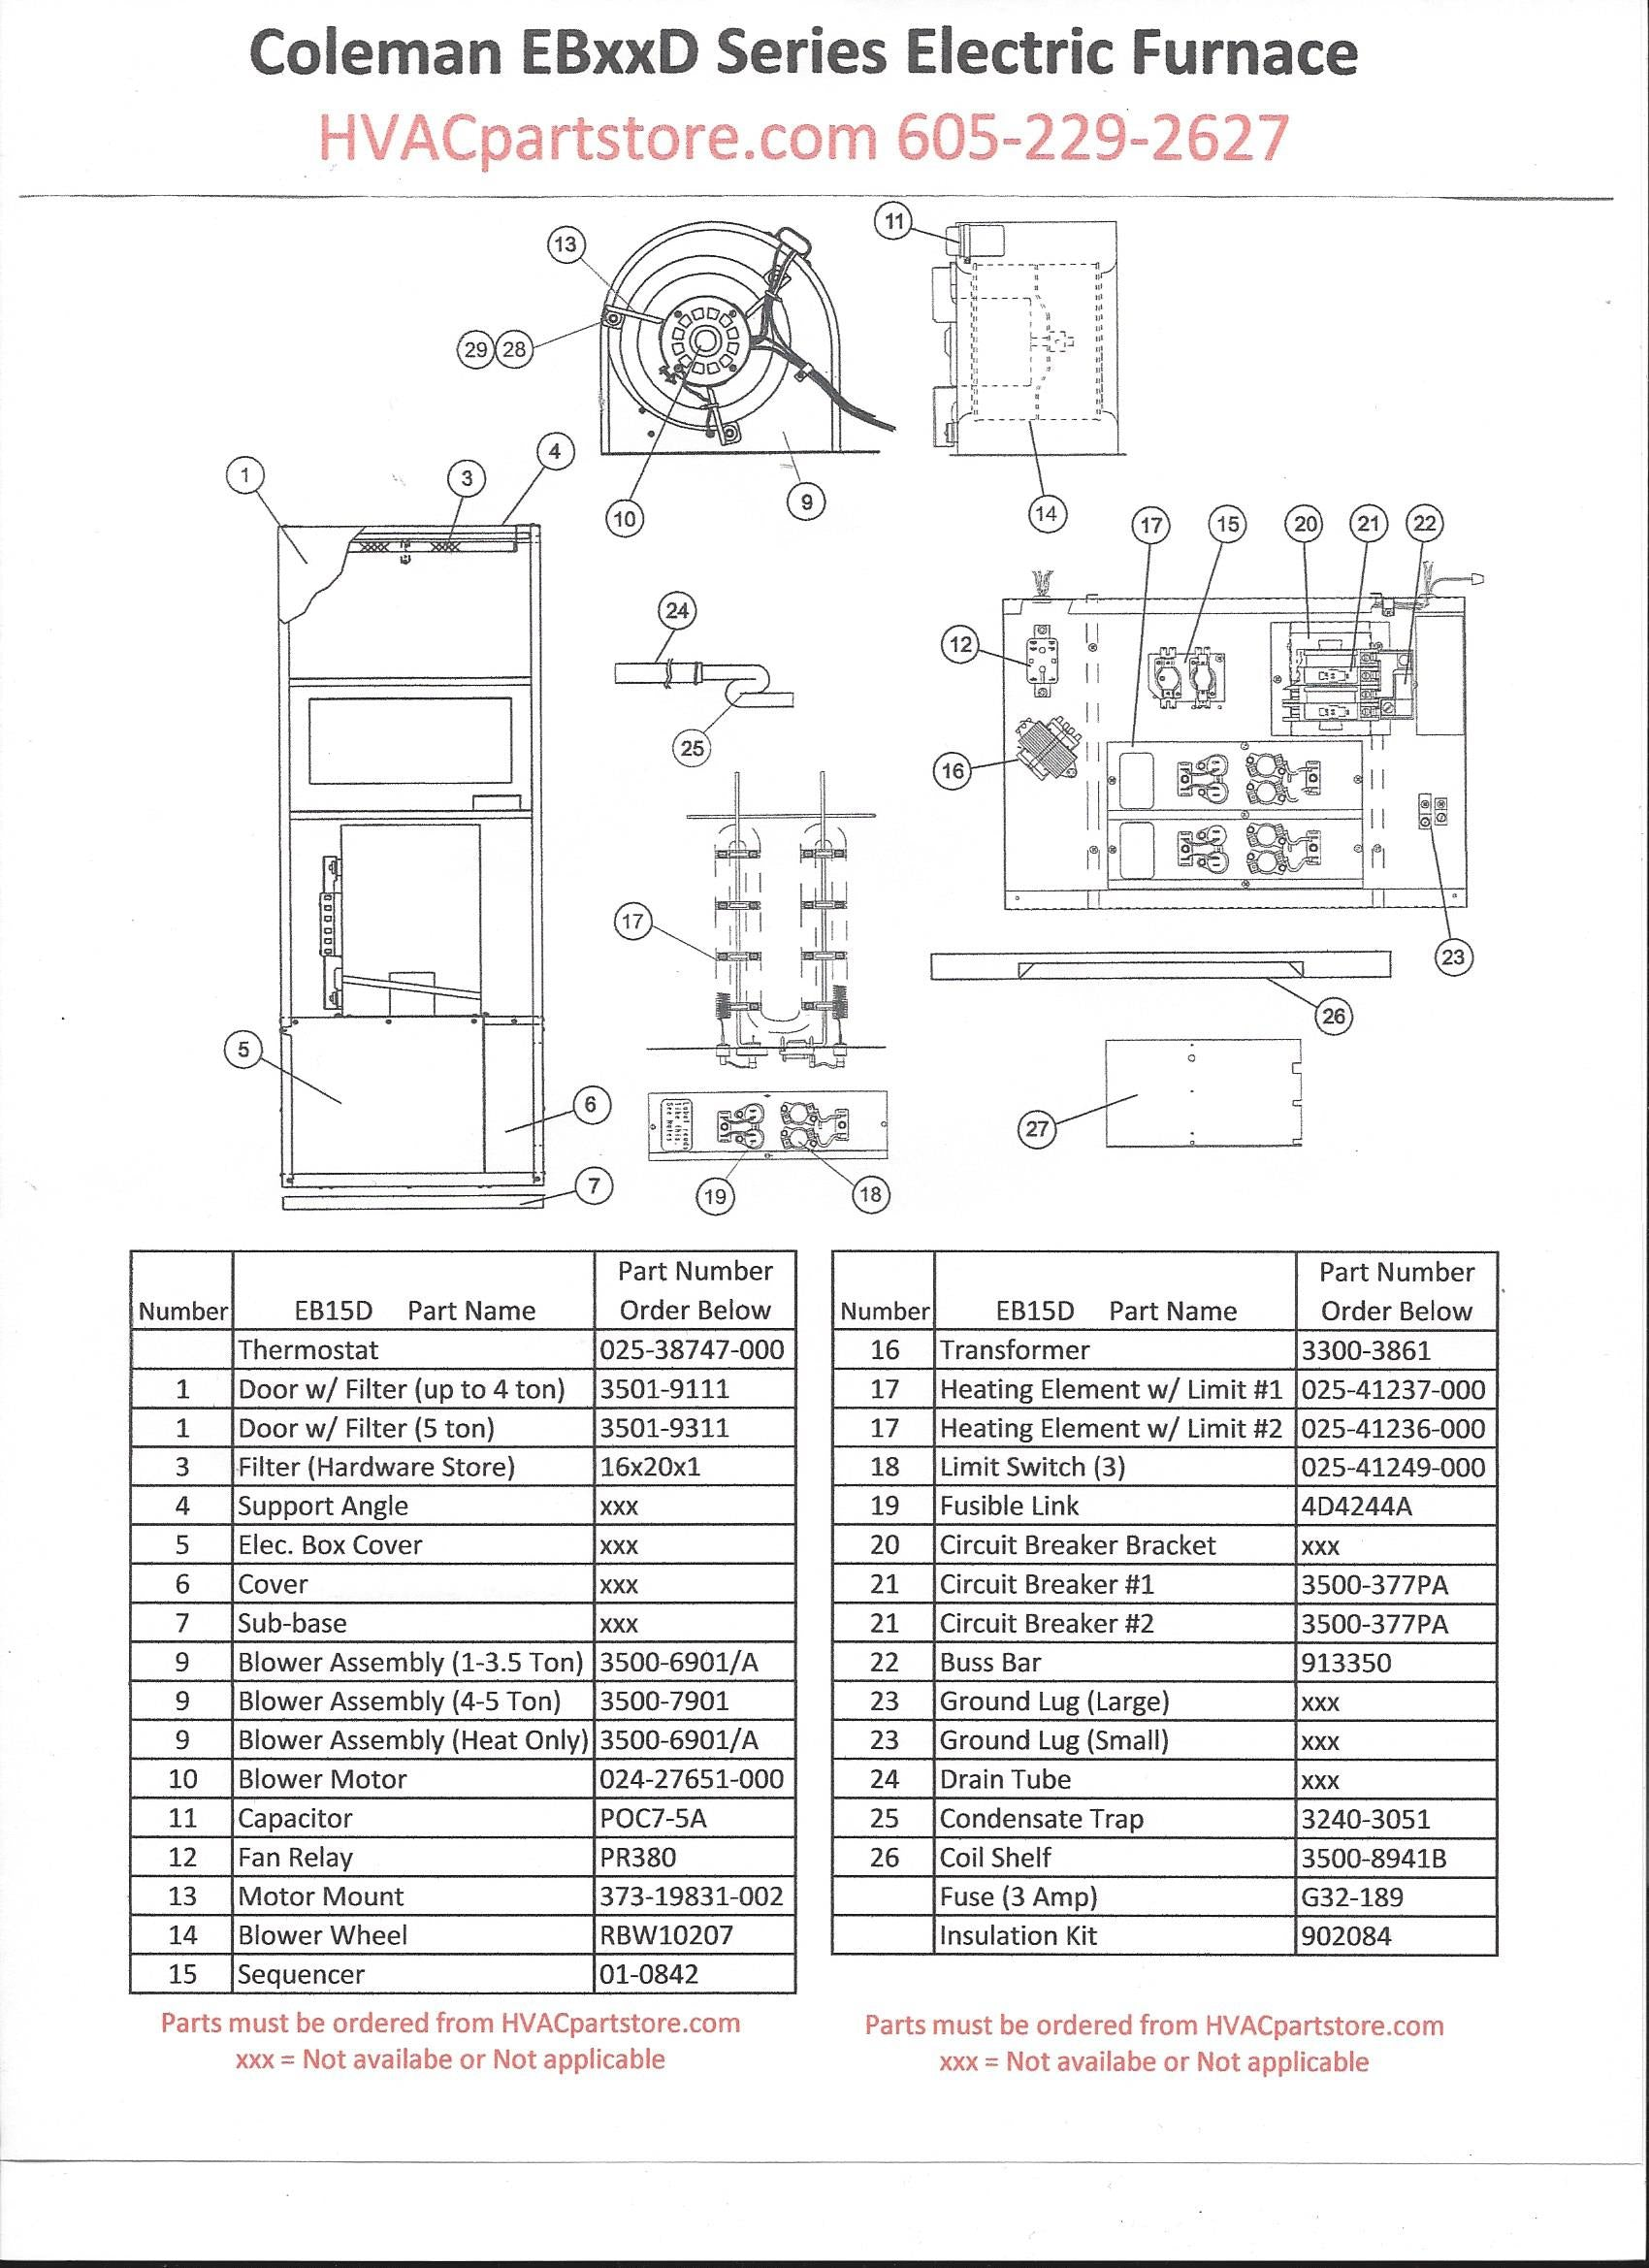 Lovely Dragonfire Pickups Wiring Diagram Thick Viper Remote Start Wiring Shaped Bulldog Security Com Car Alarm Installation Wiring Diagram Youthful 4pdt Switch Wiring BlackBulldog Remote Start Manual EB15D Coleman Electric Furnace Parts \u2013 HVACpartstore